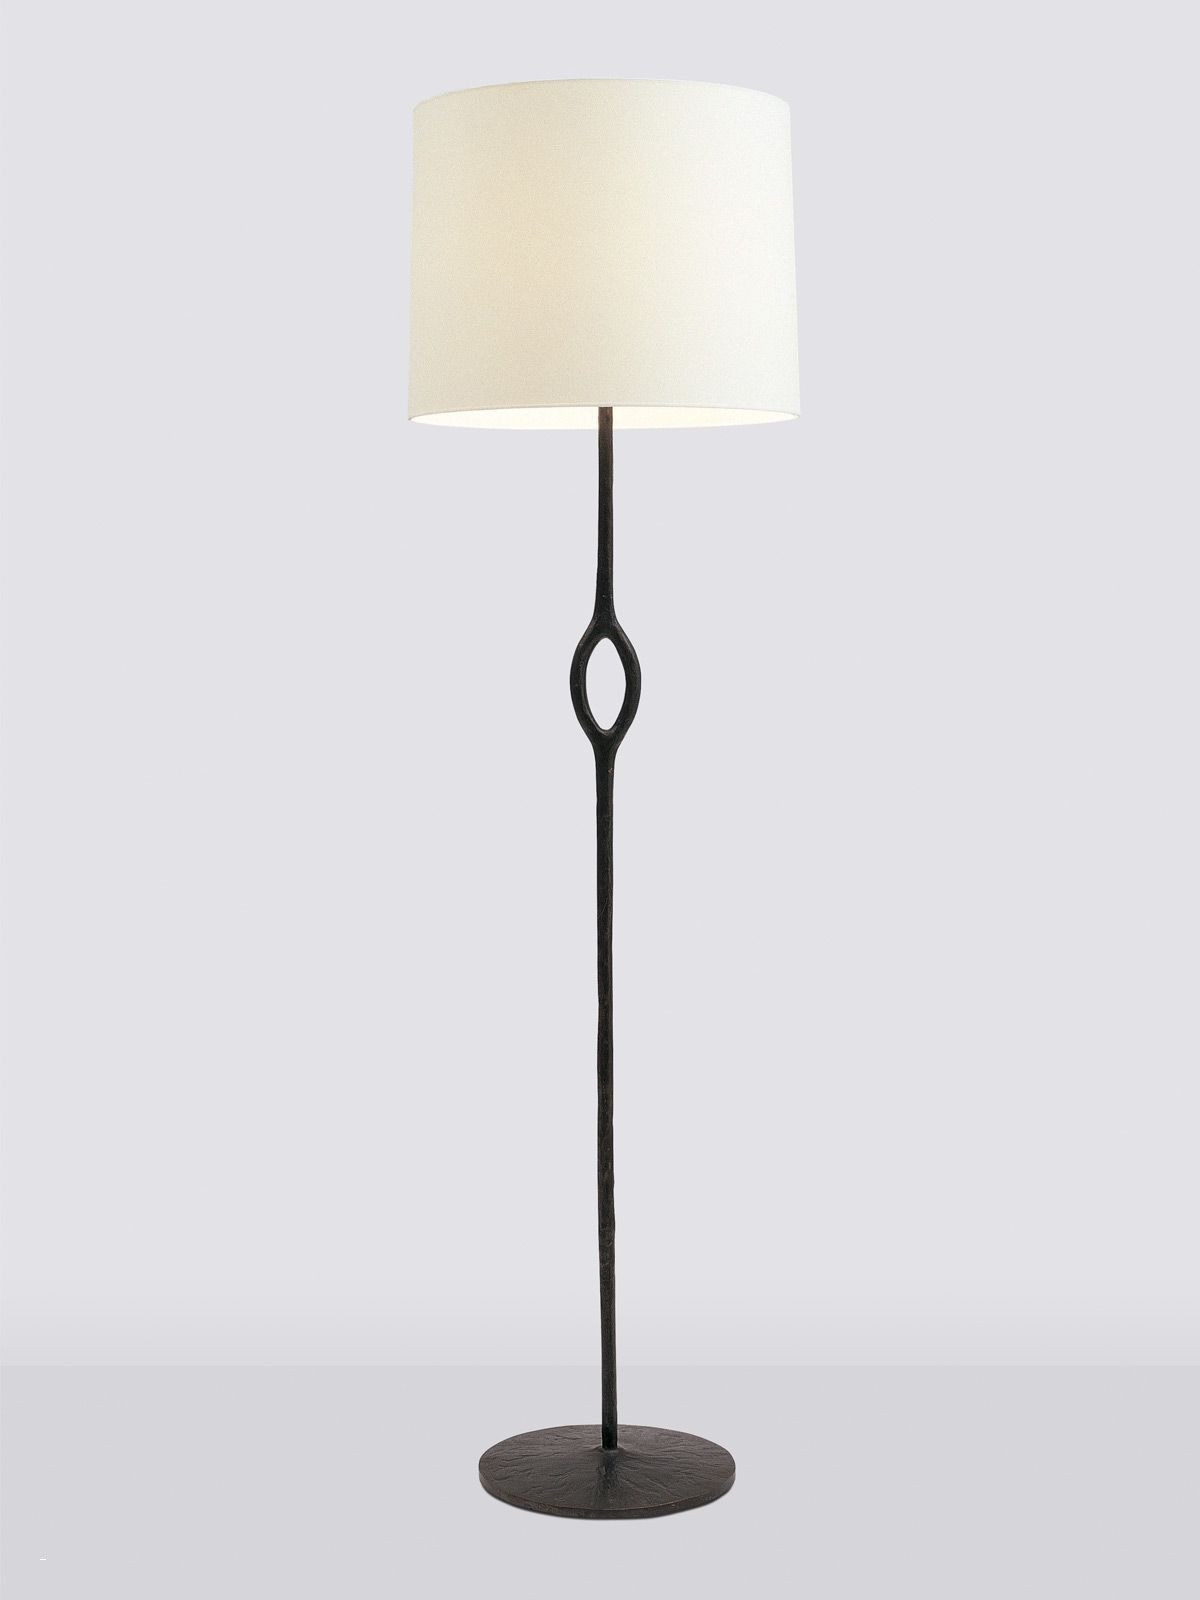 tall copper vase of modern tall lamps awesome all modern floor lamps best lamps cottage throughout modern tall lamps awesome all modern floor lamps best lamps cottage lamps cottage lamps 0d